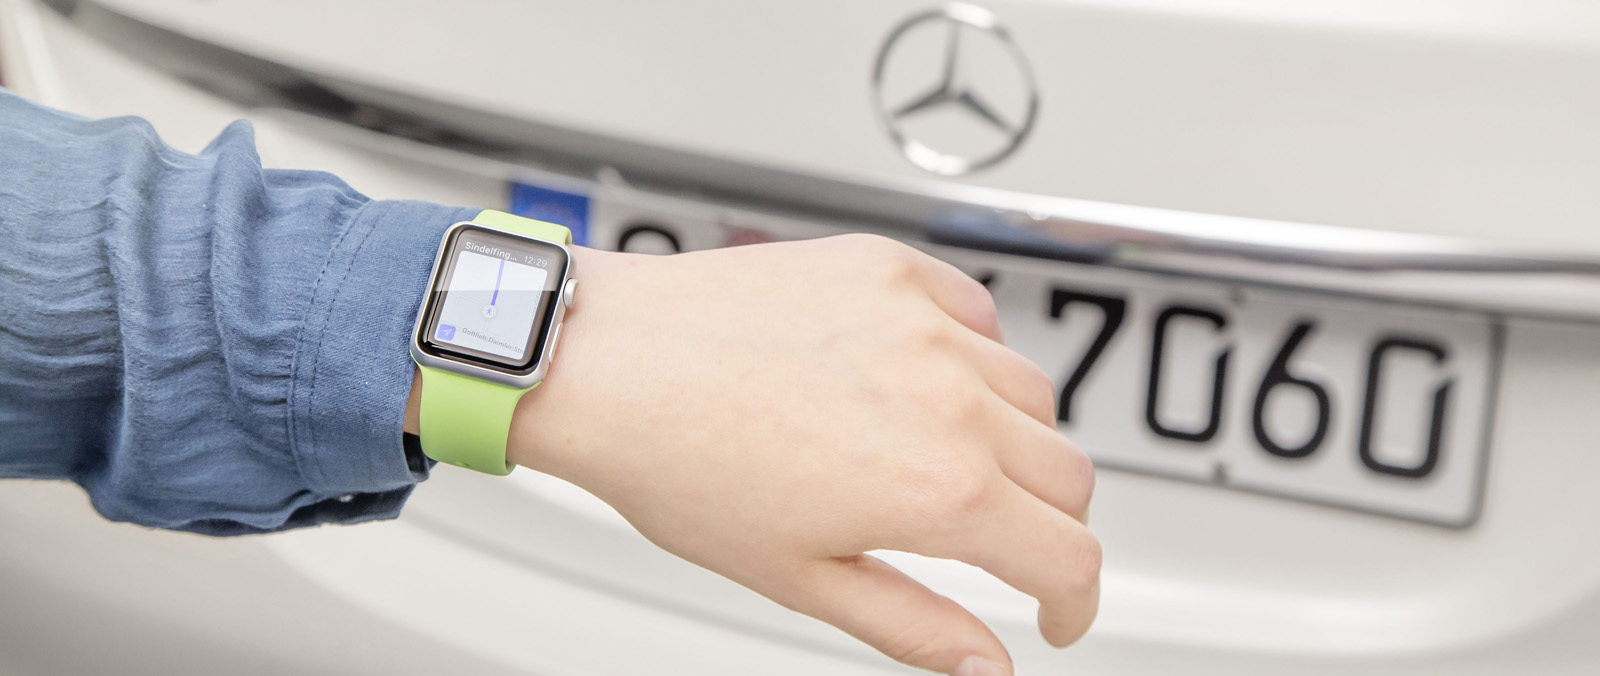 Mercedes presenteert nieuwe app voor Apple Watch